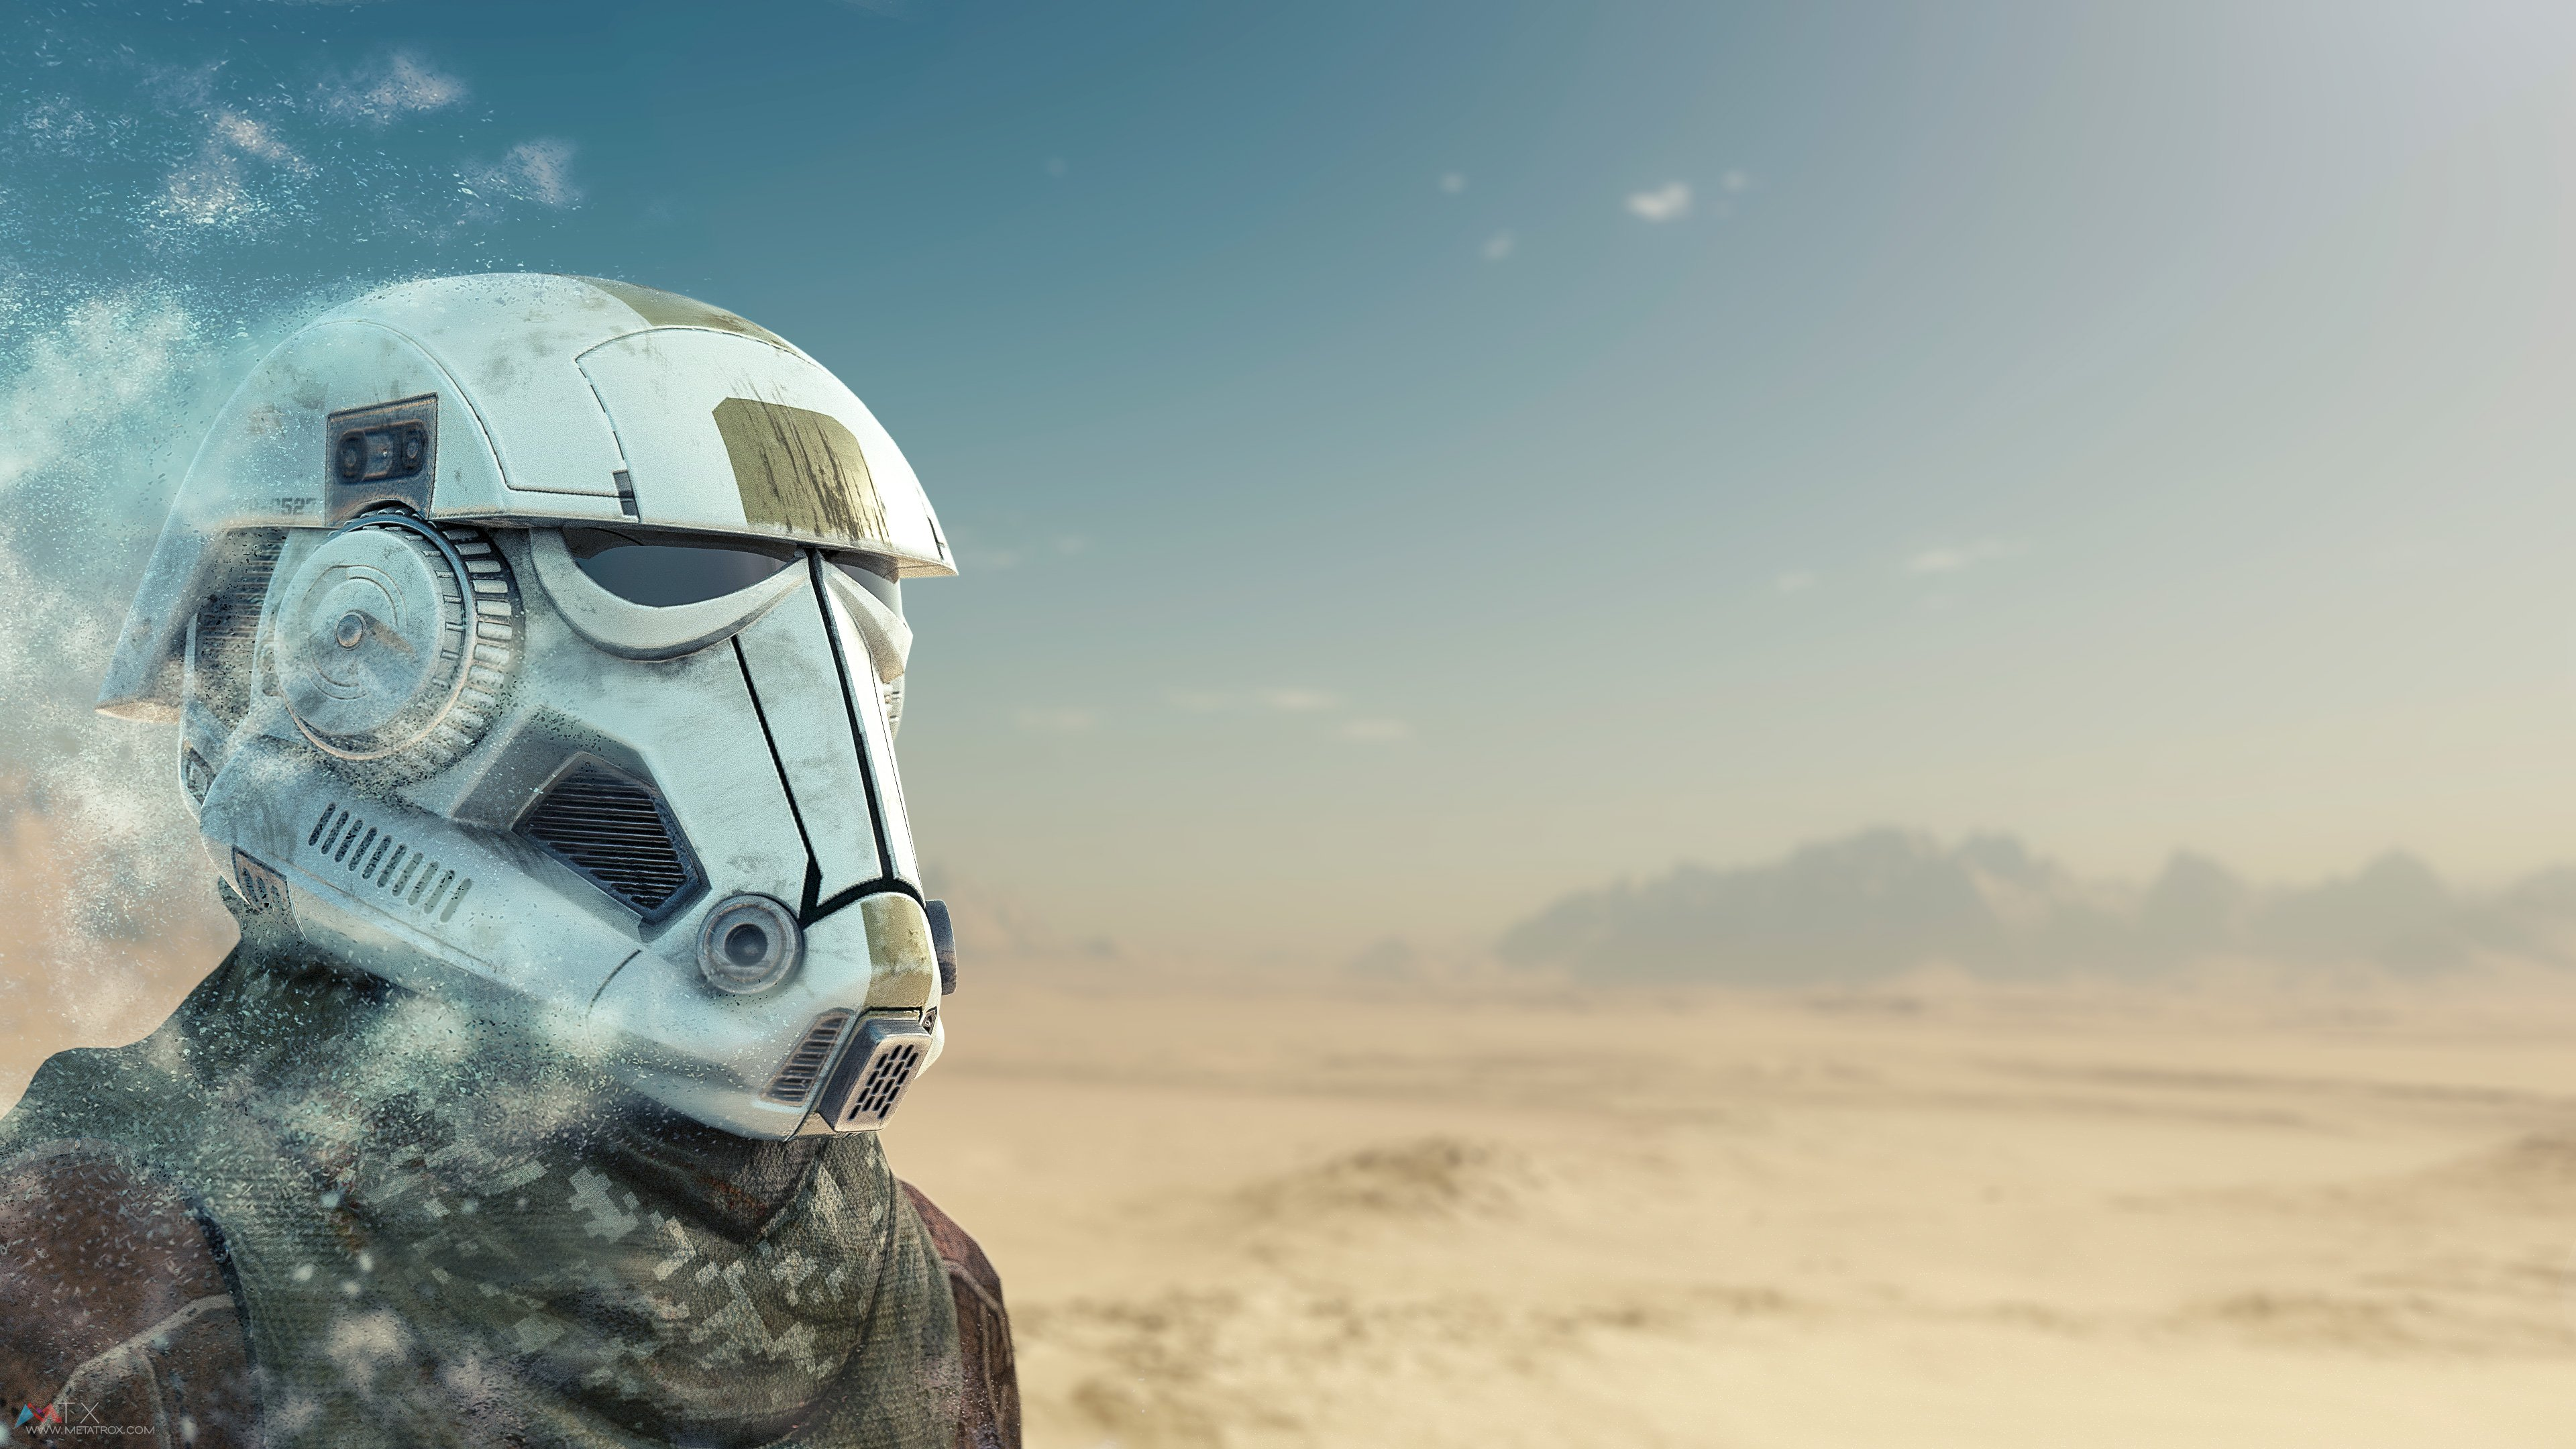 Starwars 4k Wallpapers For Your Desktop Or Mobile Screen Free And Easy To Download